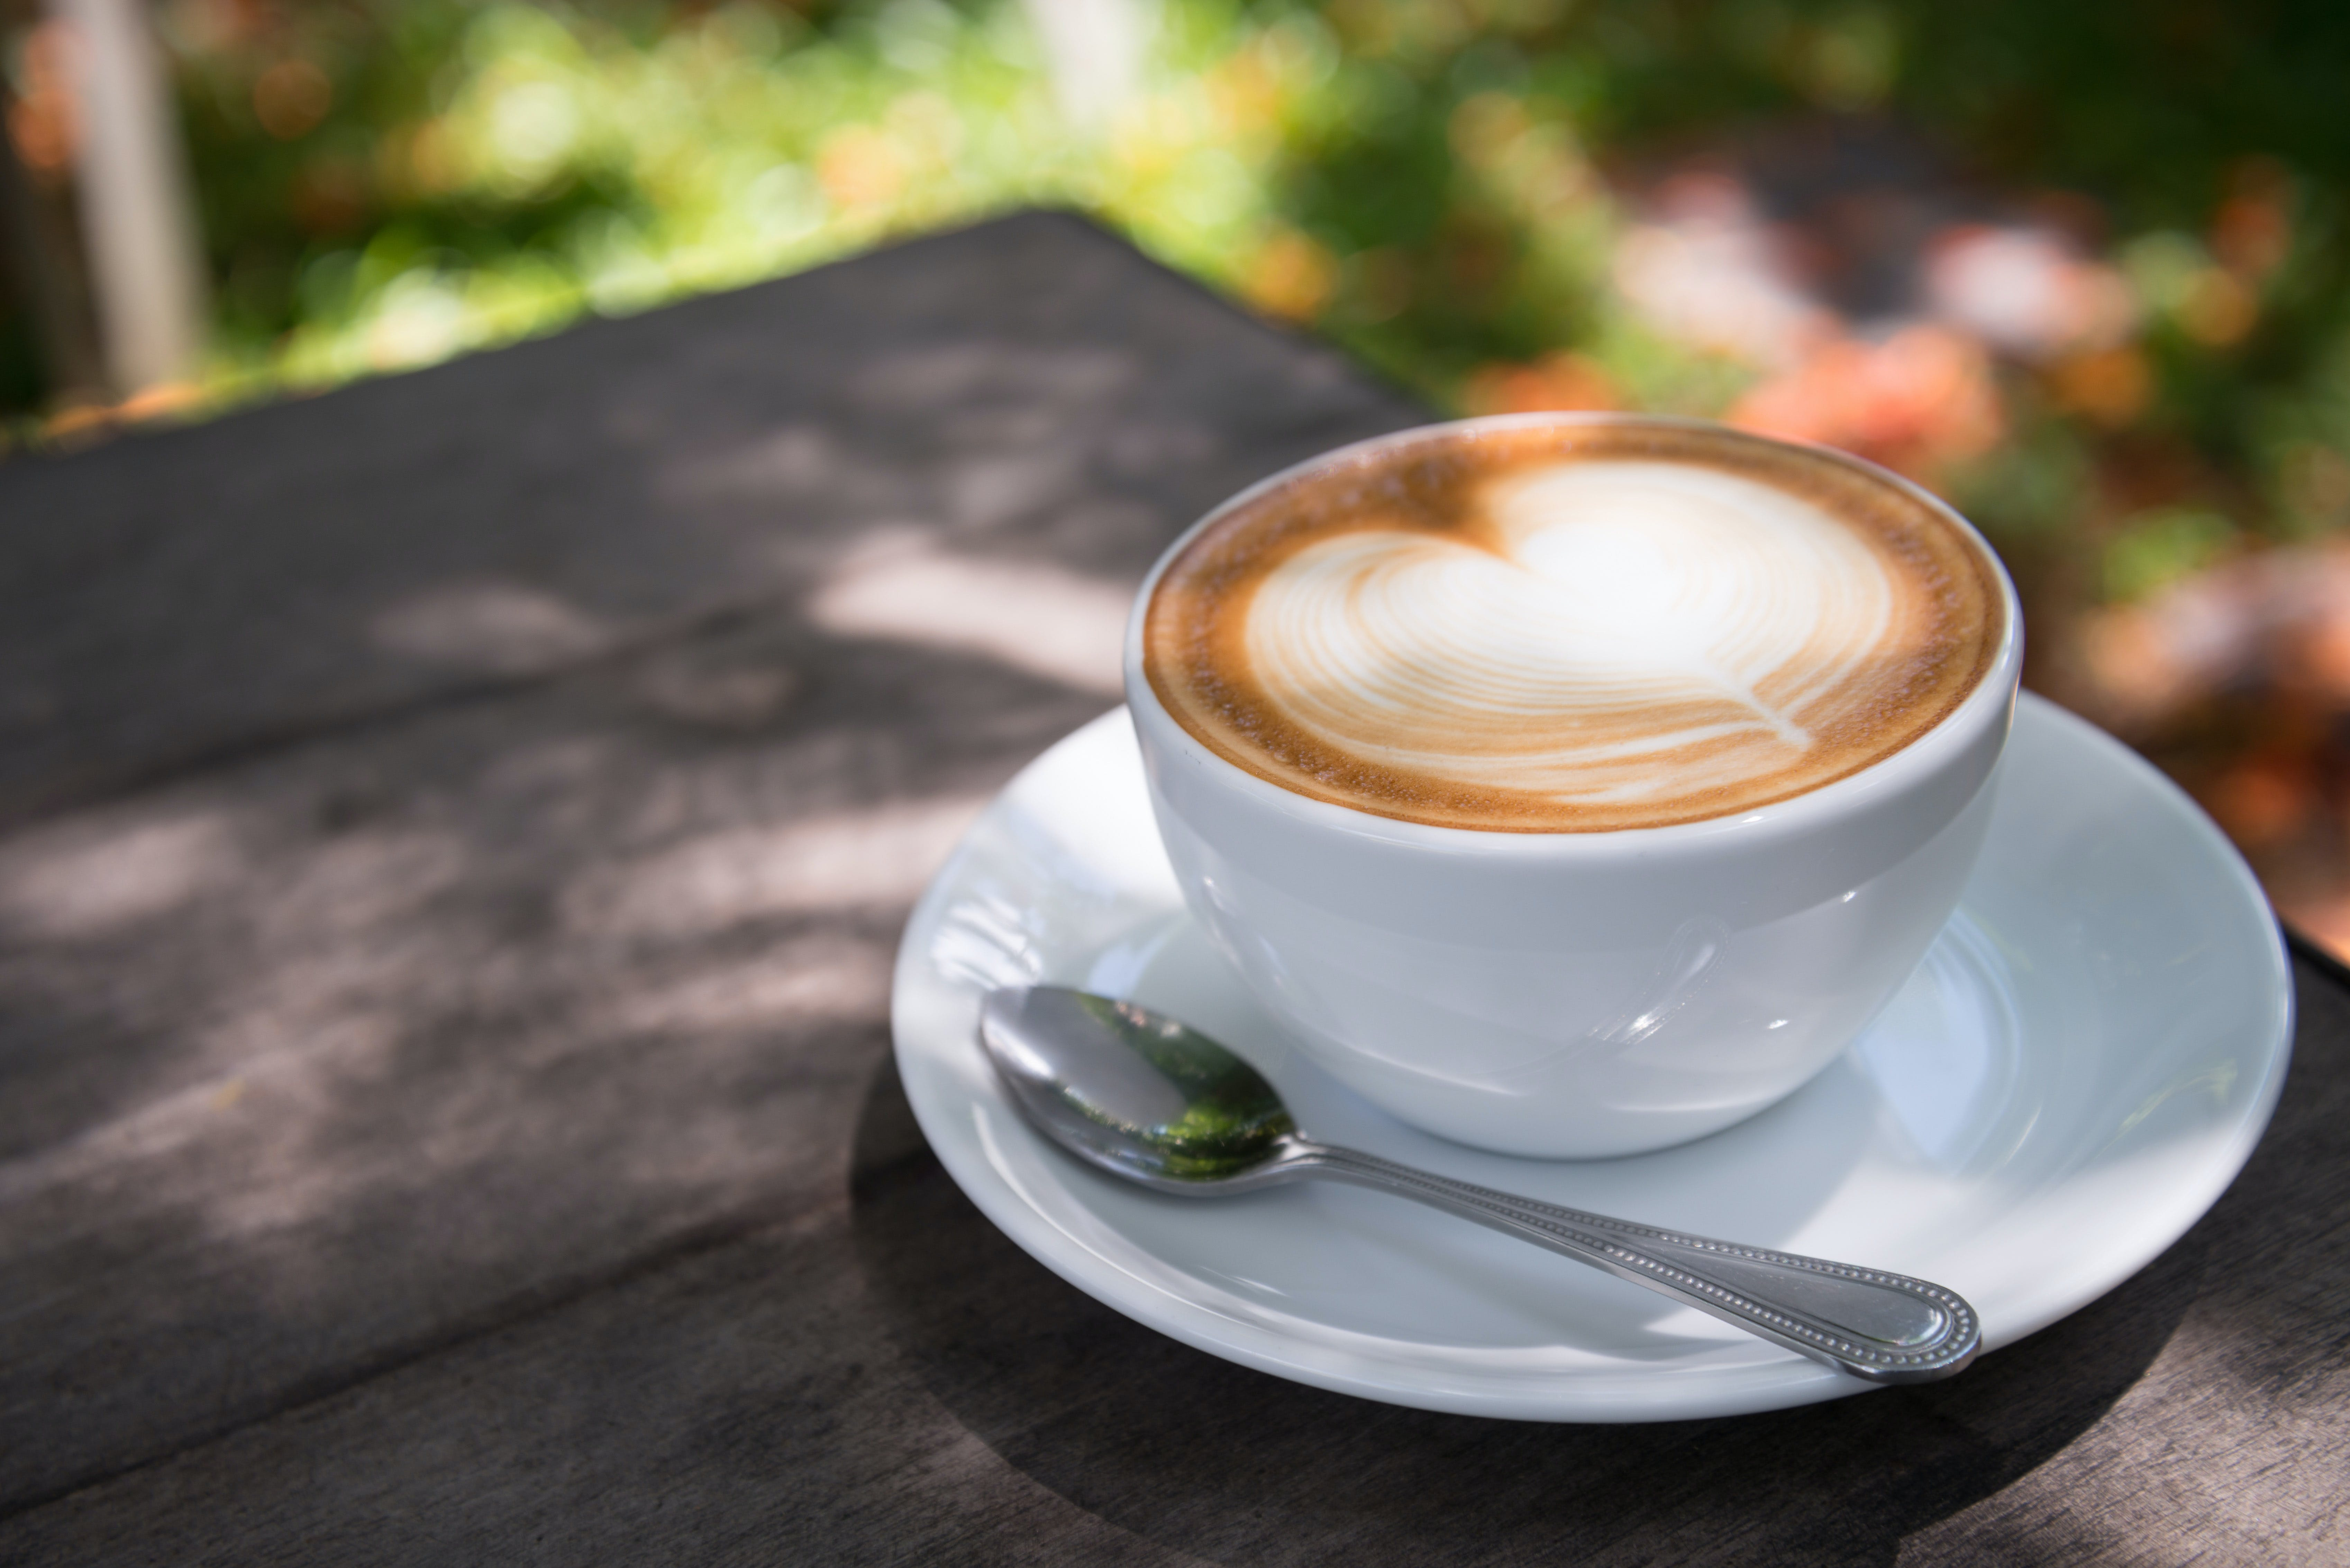 White Ceramic Cup Filled With Latte